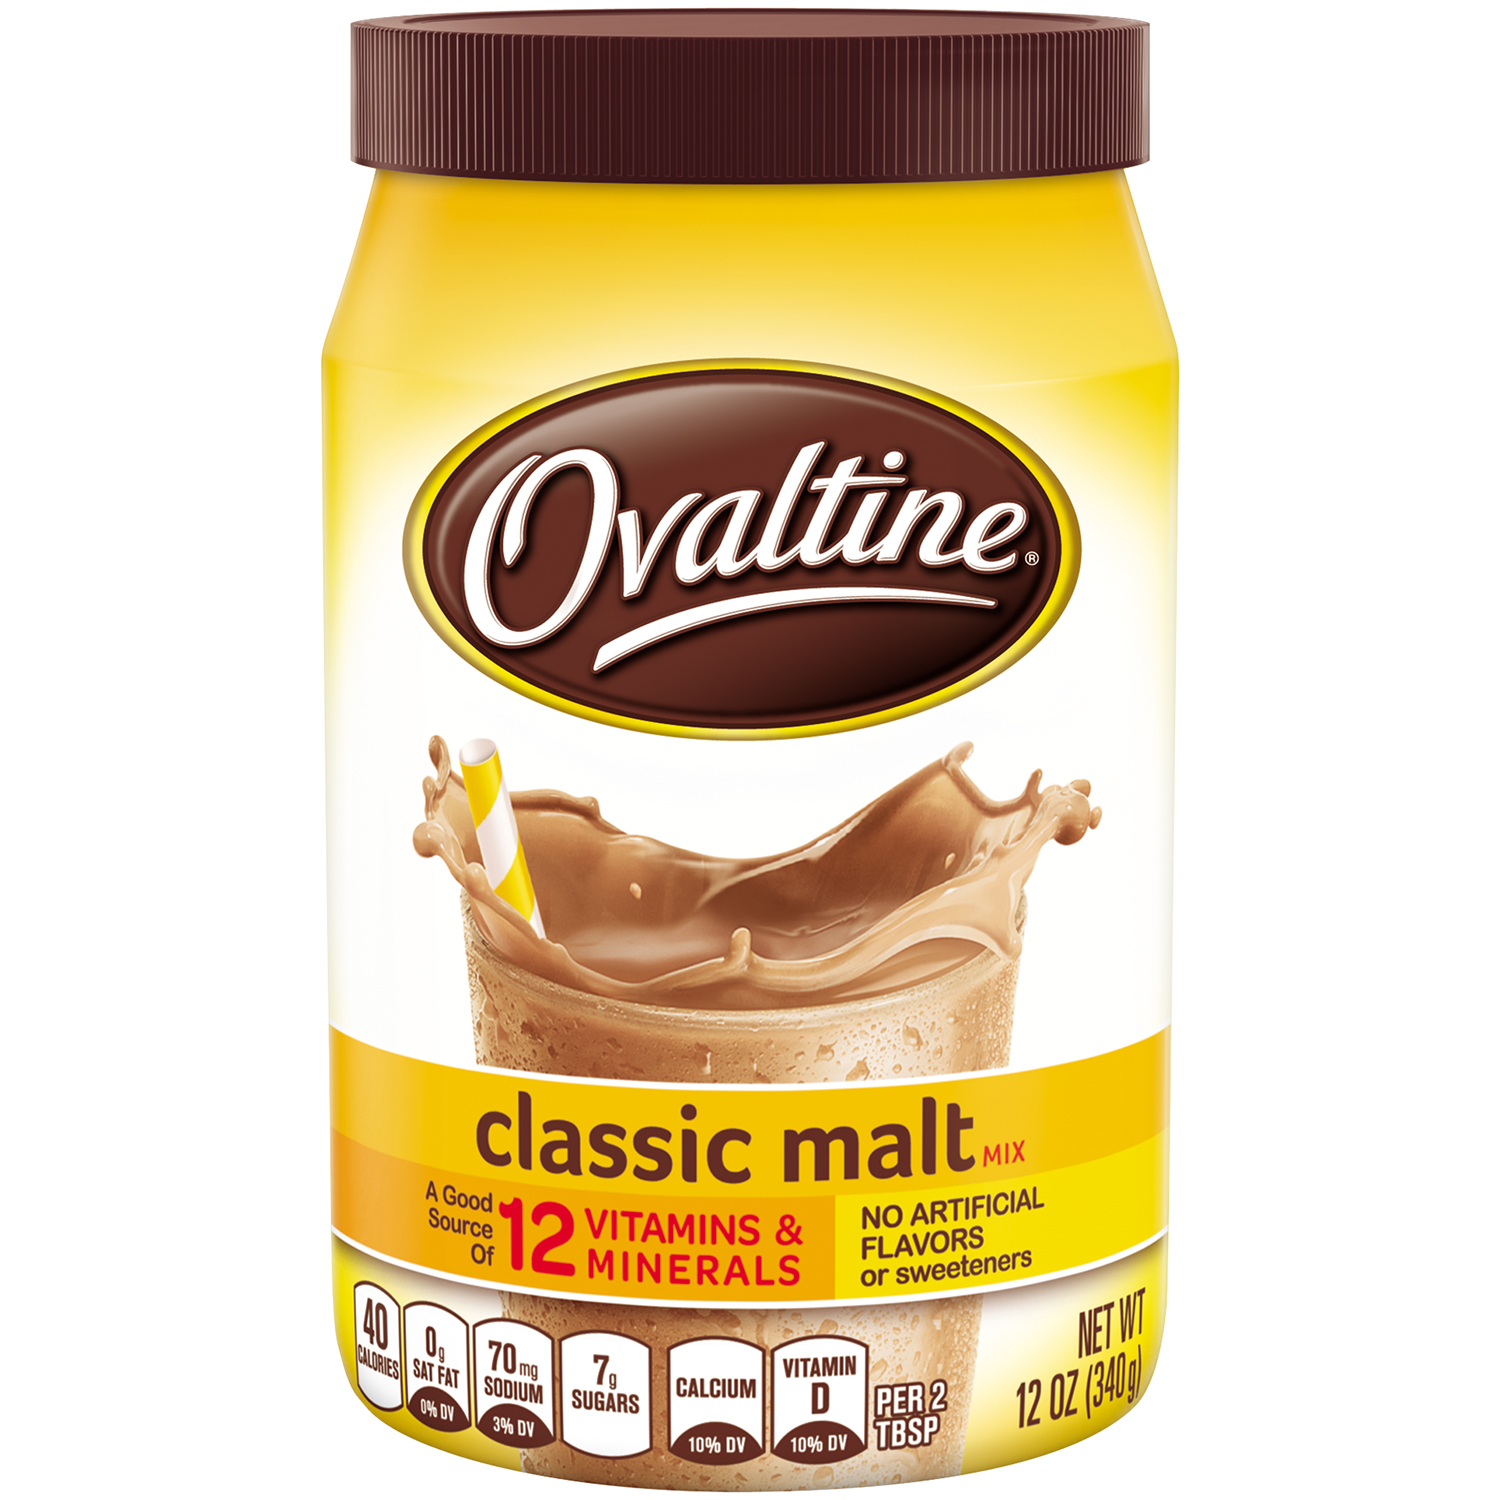 OVALTINE Classic Malt Flavored Milk Mix 12 oz. Canister